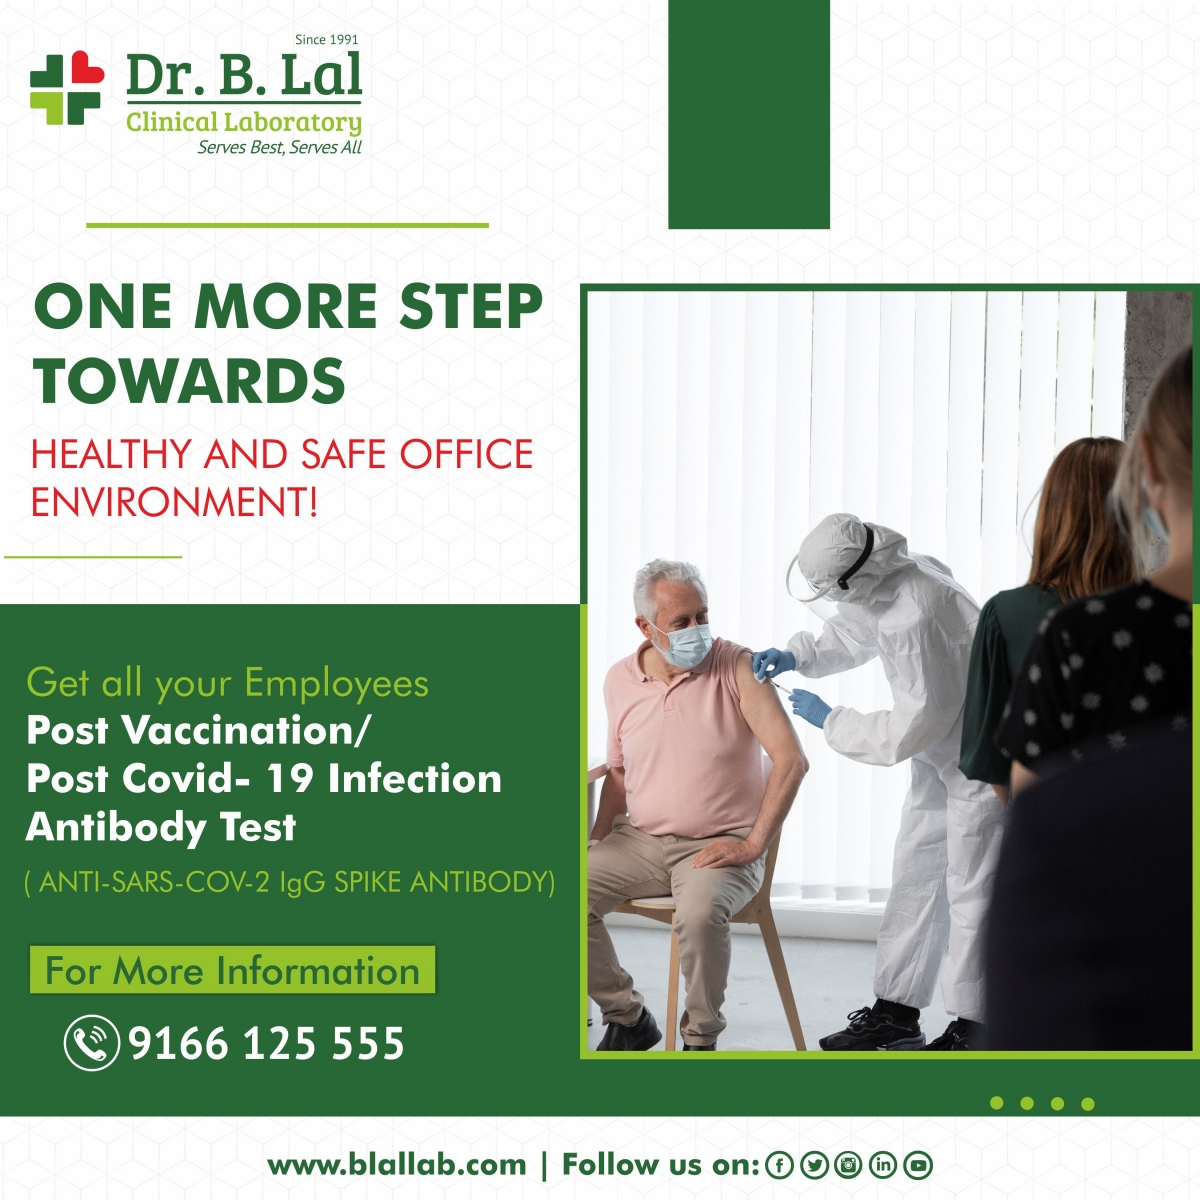 Post Vaccination/Post Covid-19 Infection Antibody Test